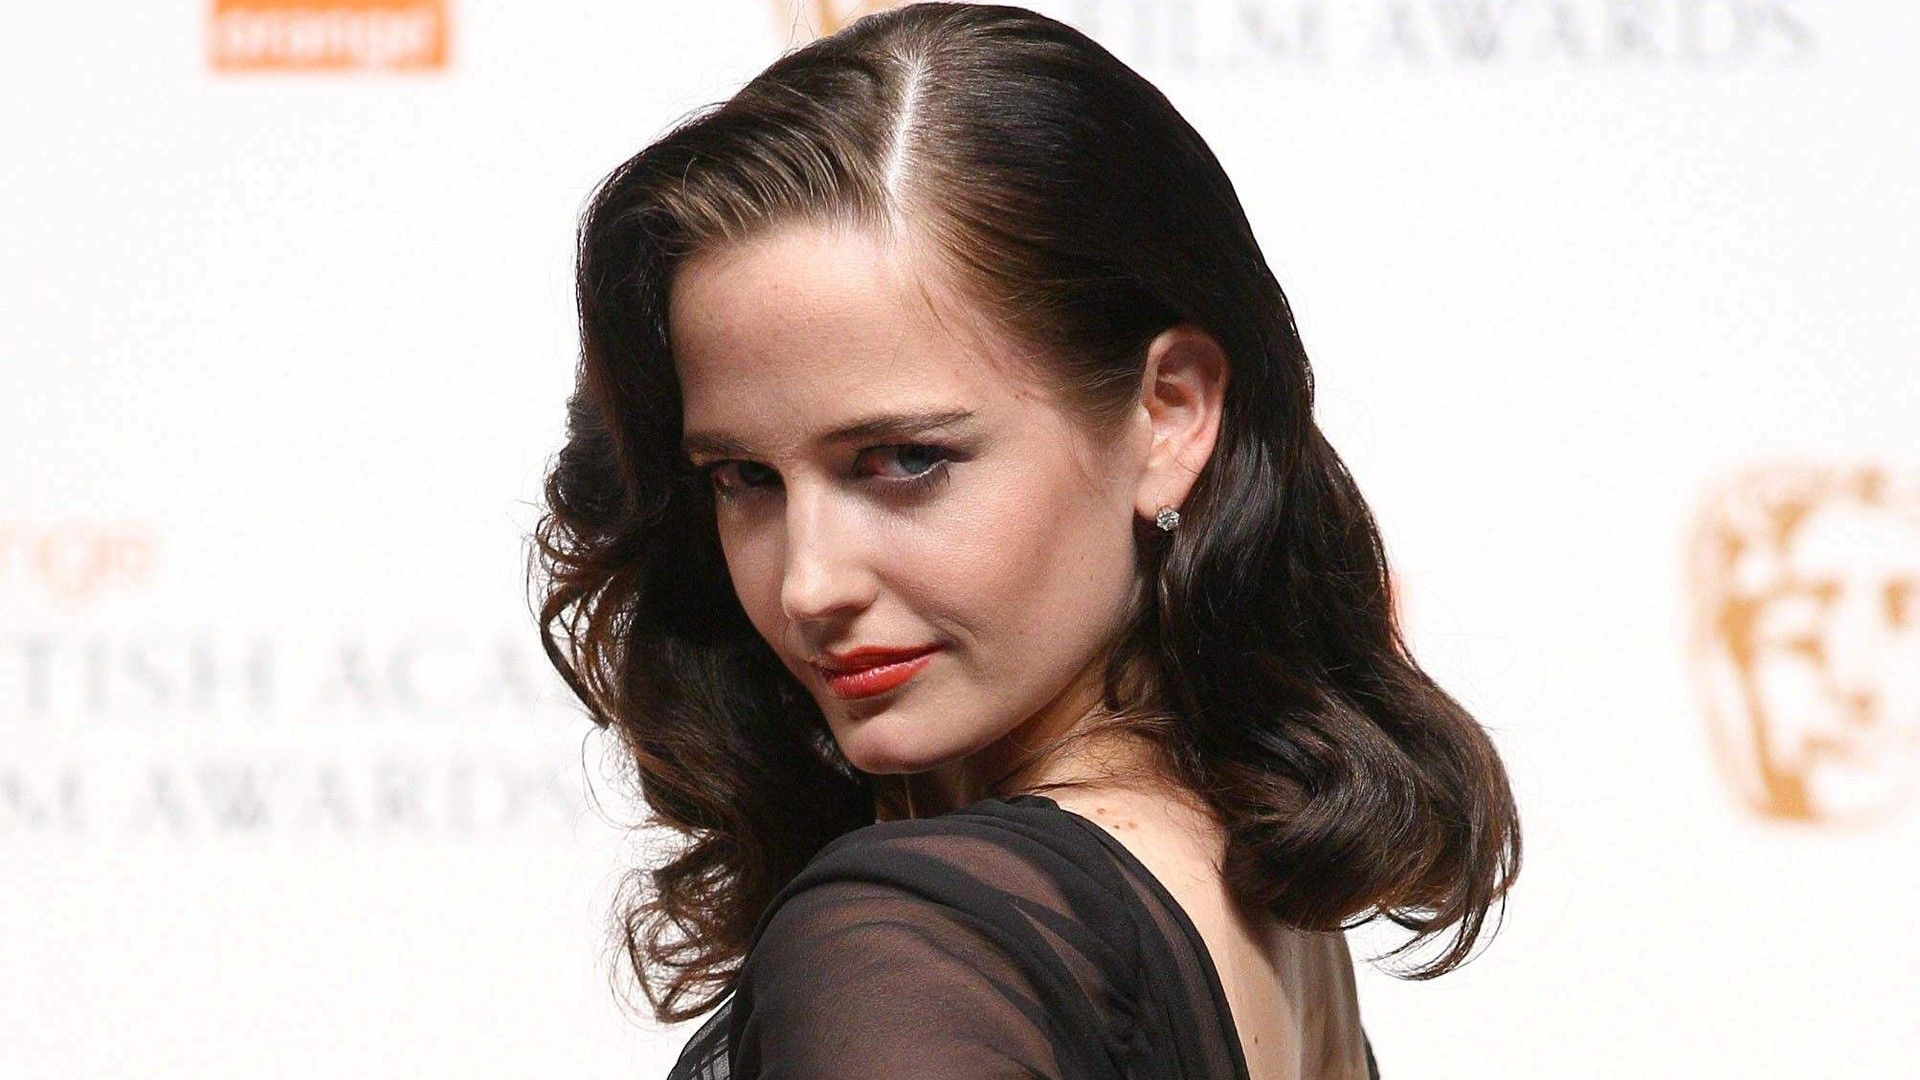 Famous French Hollywood Actress Eva Green In Black Hd Wallpaper Actress Eva Green Hollywood Actress Wallpaper Eva Green